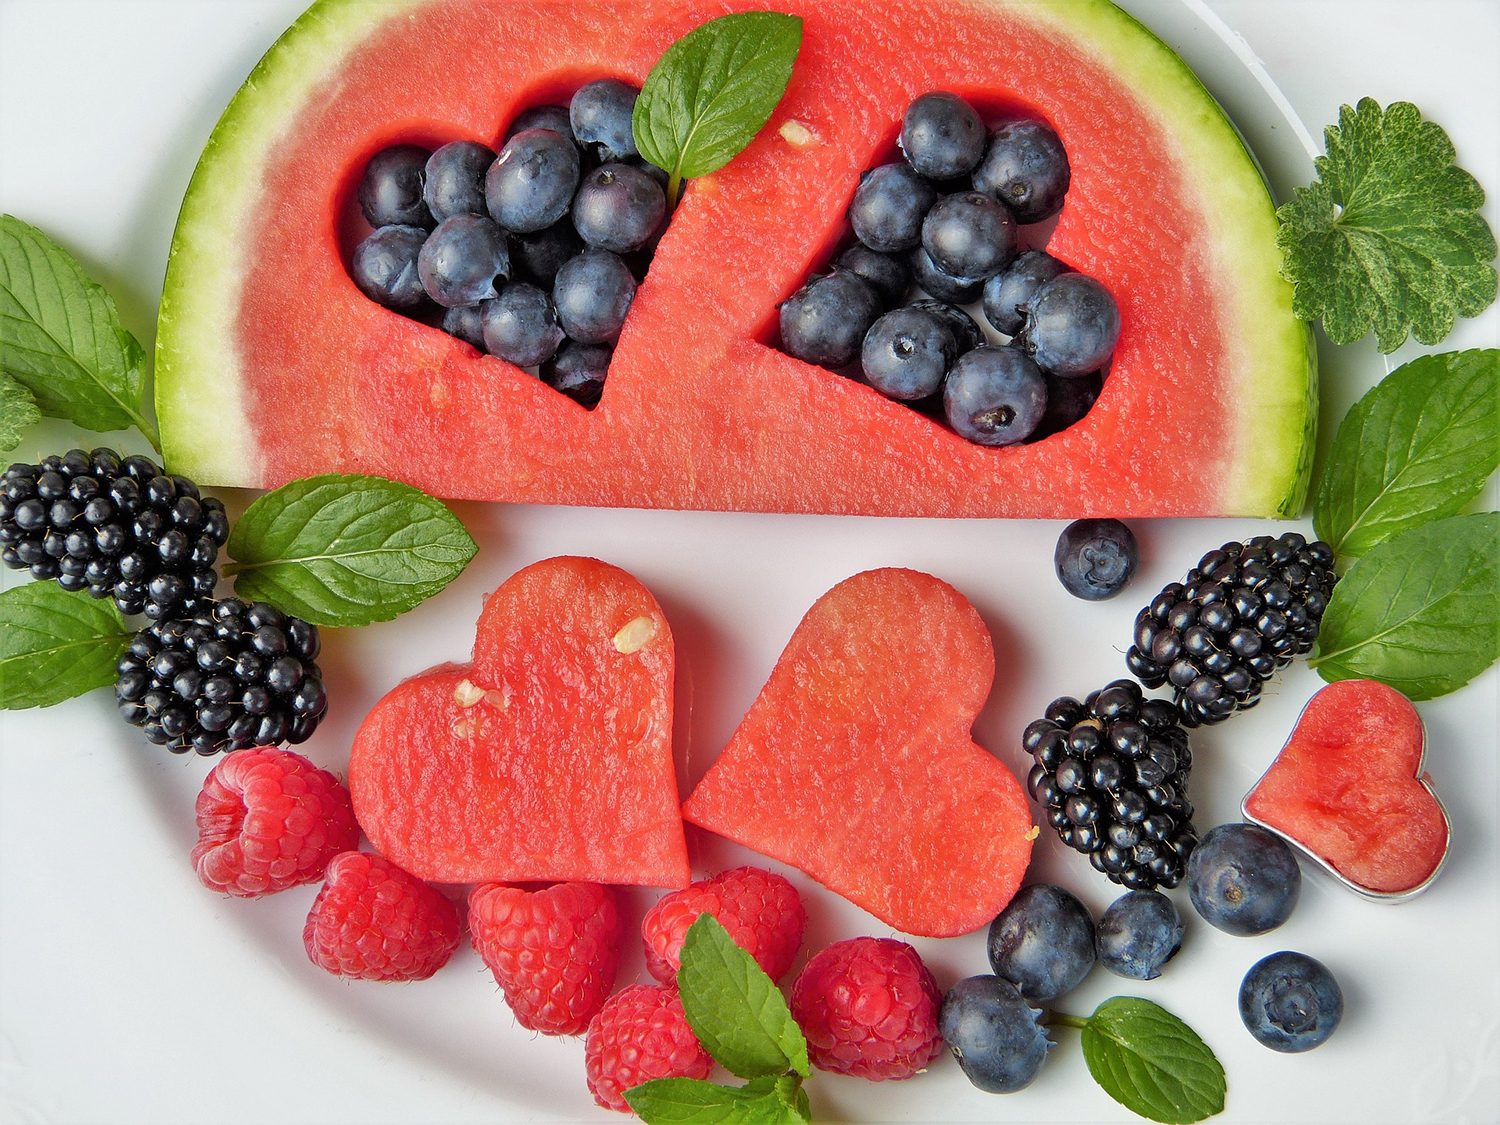 Healthy Fruits Decoration, Watermelon, Strawberries, Blueberries, and Blackberries